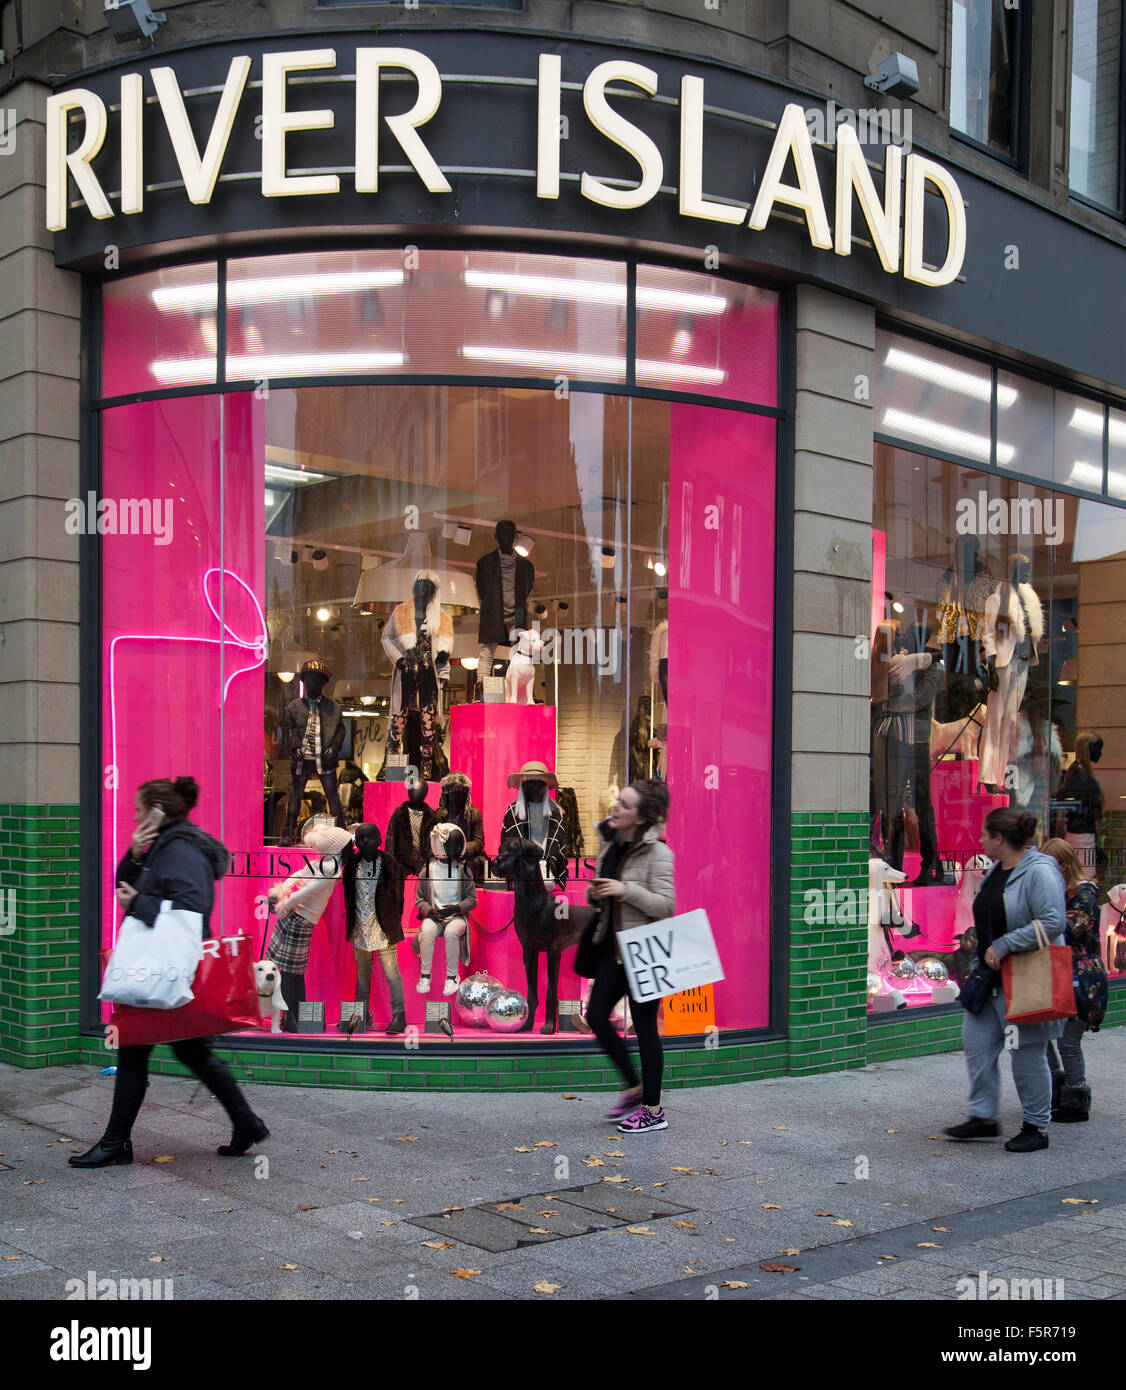 Boxing Day Sales  River Island